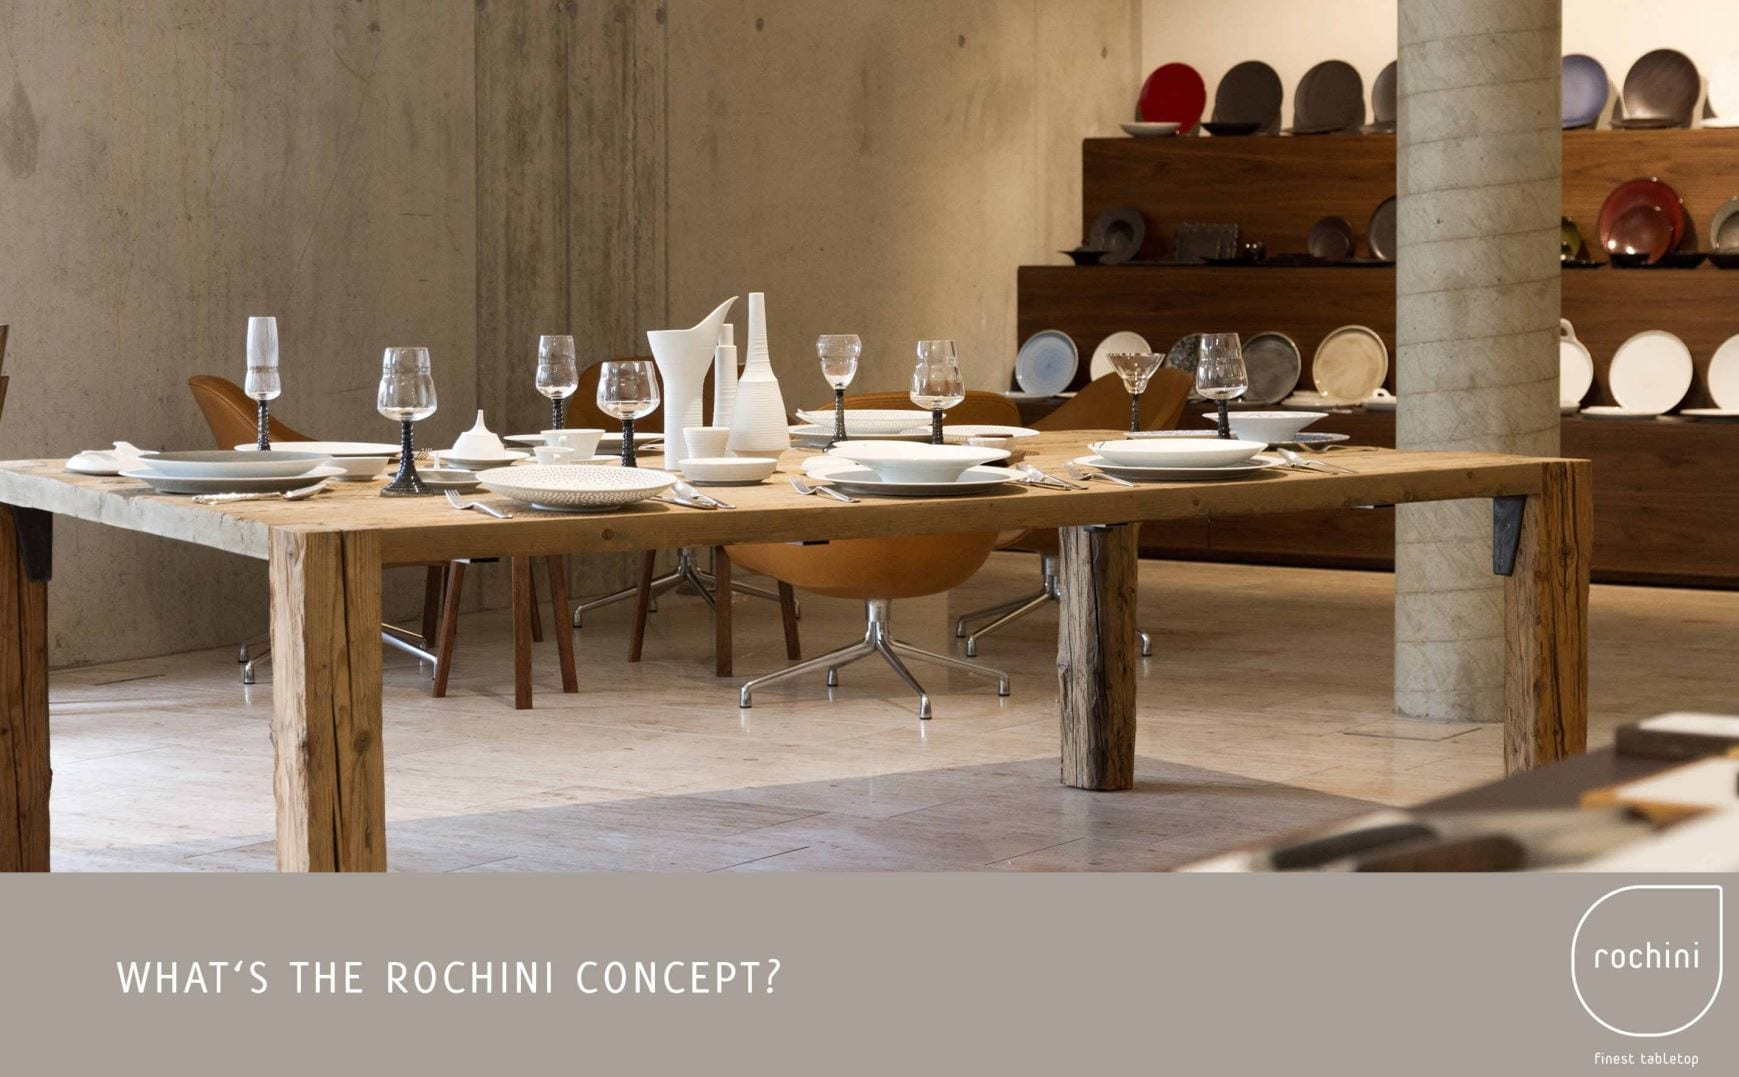 1 What´s the rochini concept?